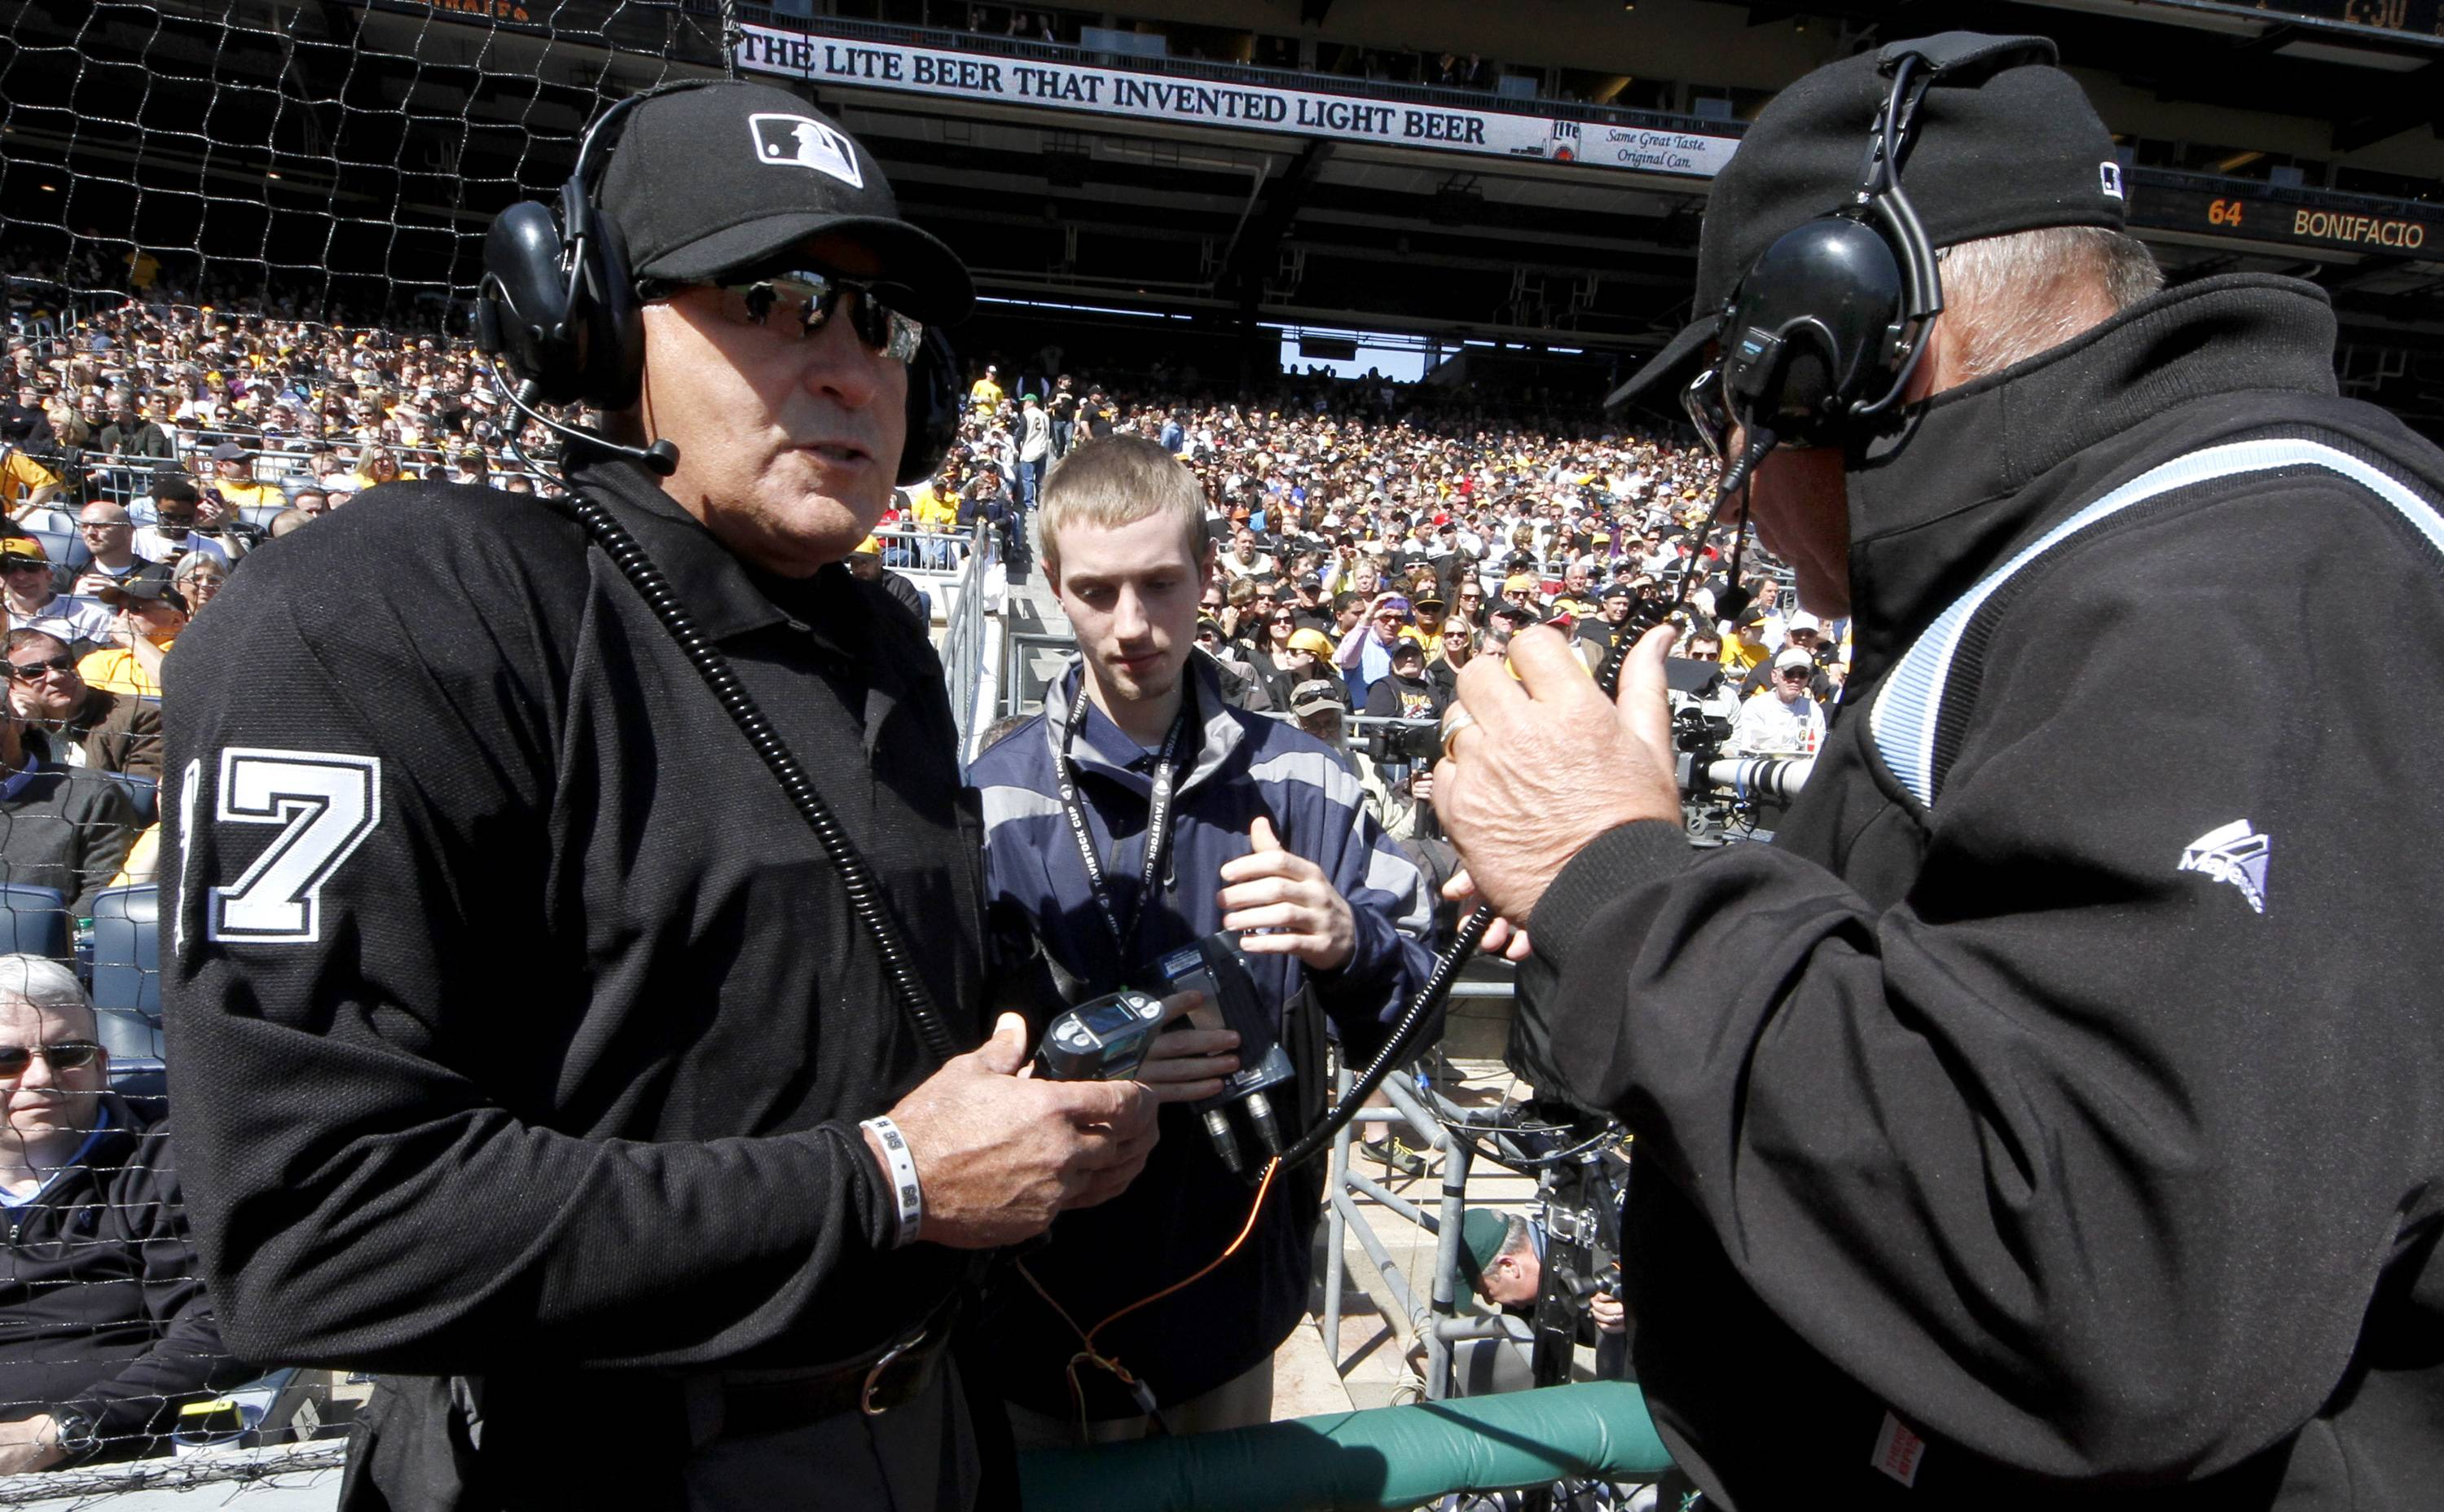 First base umpire Bob Davidson, right, and home plate umpire John Hirschbeck, left, talk over headsets as a play at first base is being reviewed in the fifth inning. Chicago Cubs manager Rick Renteria requested a replay on an out call.